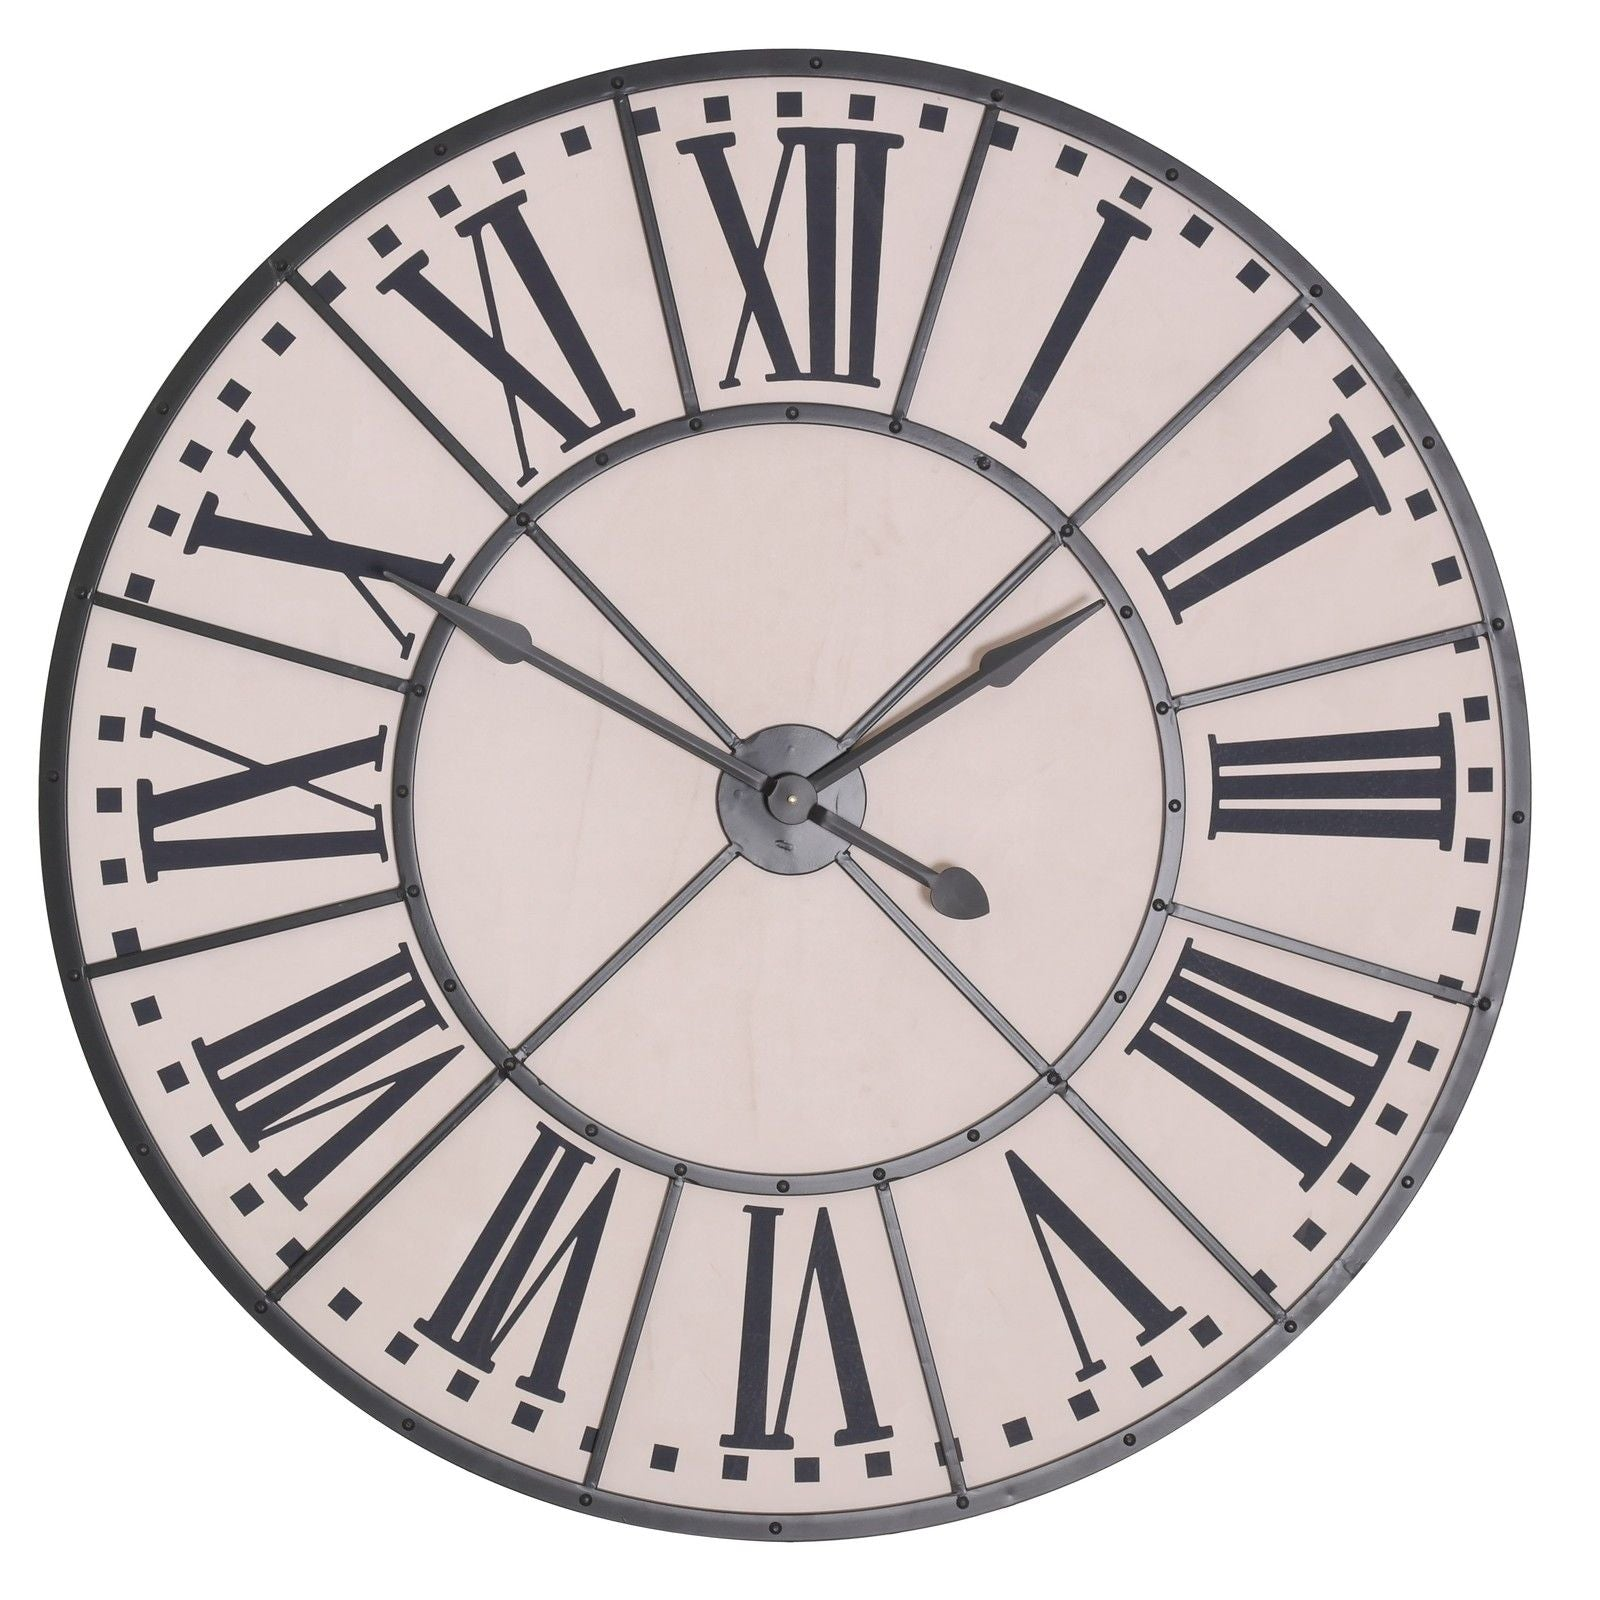 105cm Large Vintage Wall Clock